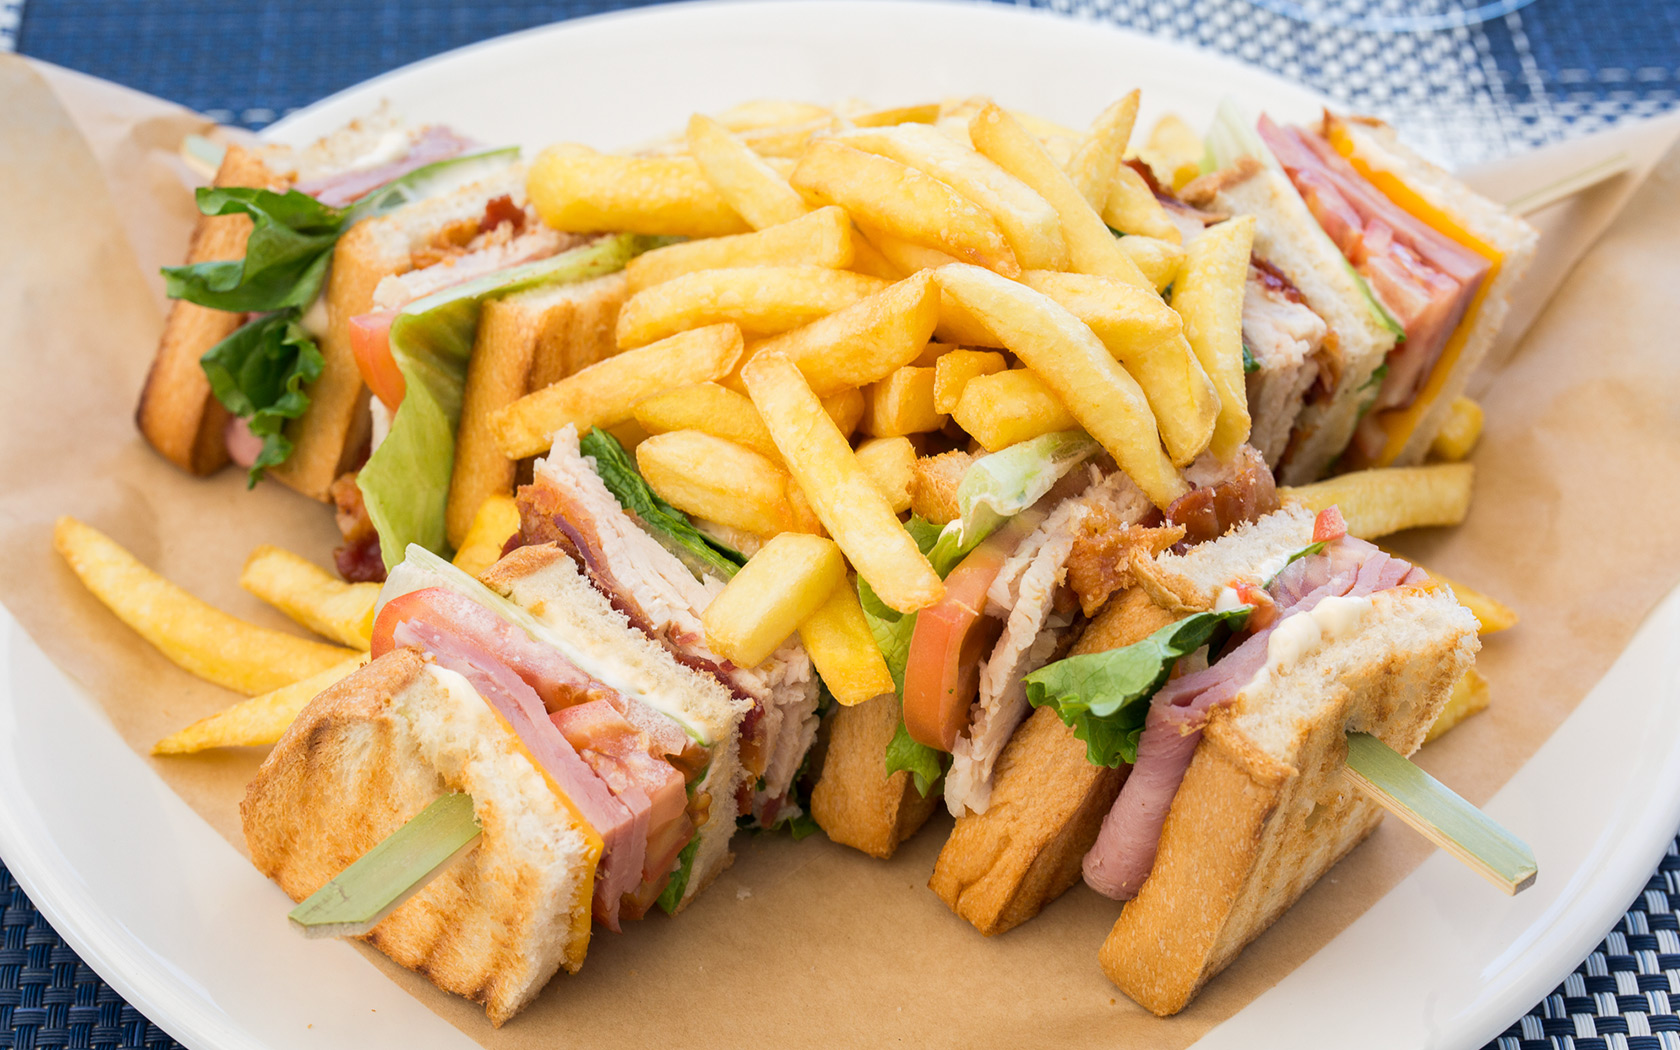 sandwich plate with fries